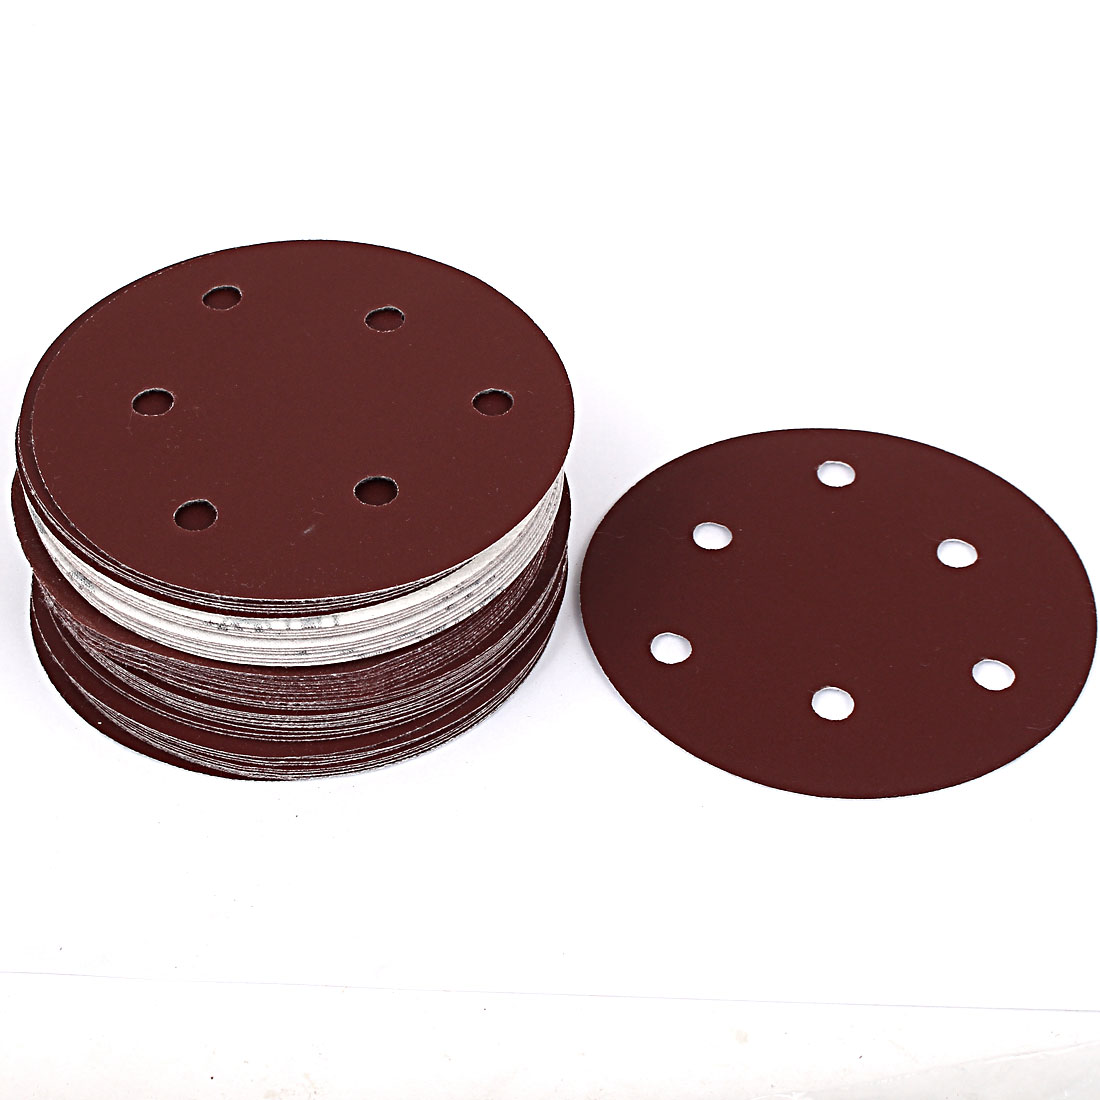 "Unique Bargains 5"" Dia 400 Grit 6 Holes Self Stick Sanding Paper Discs Brown 50 Pcs"